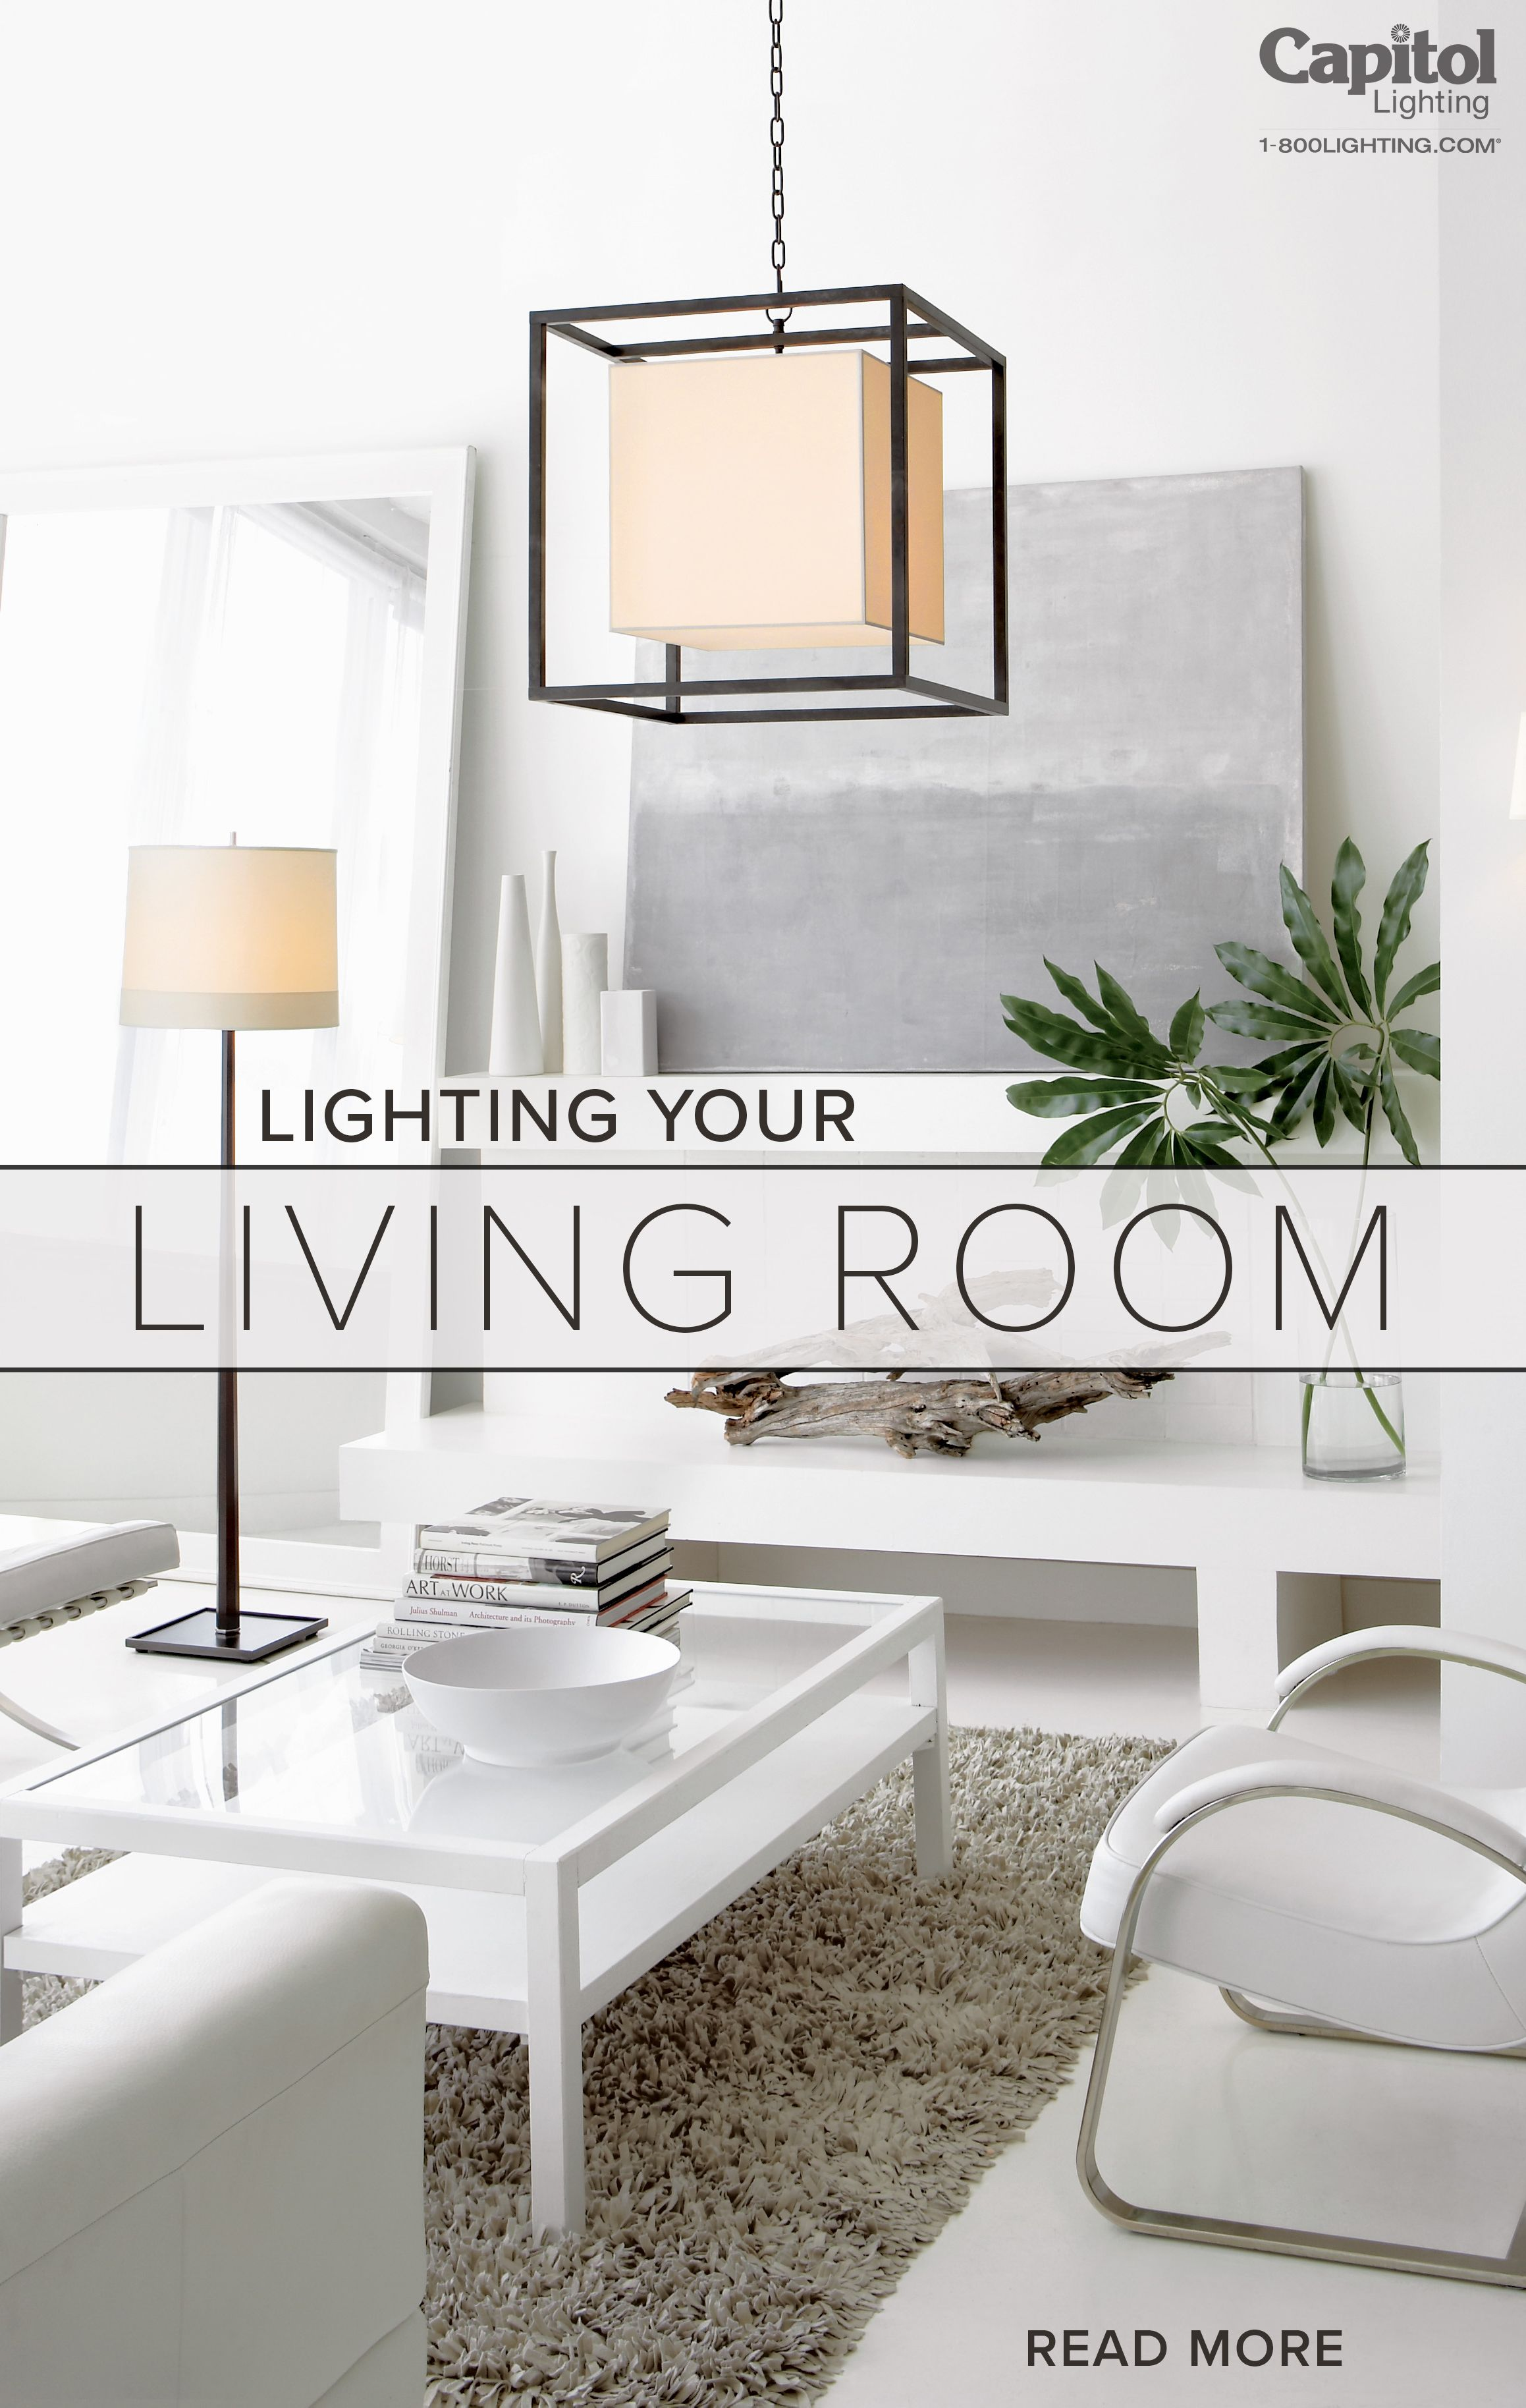 How To Light A Living Room The Right Way Capitol Lighting Accent Lighting Living Room Recessed Lighting Living Room Living Room Lighting